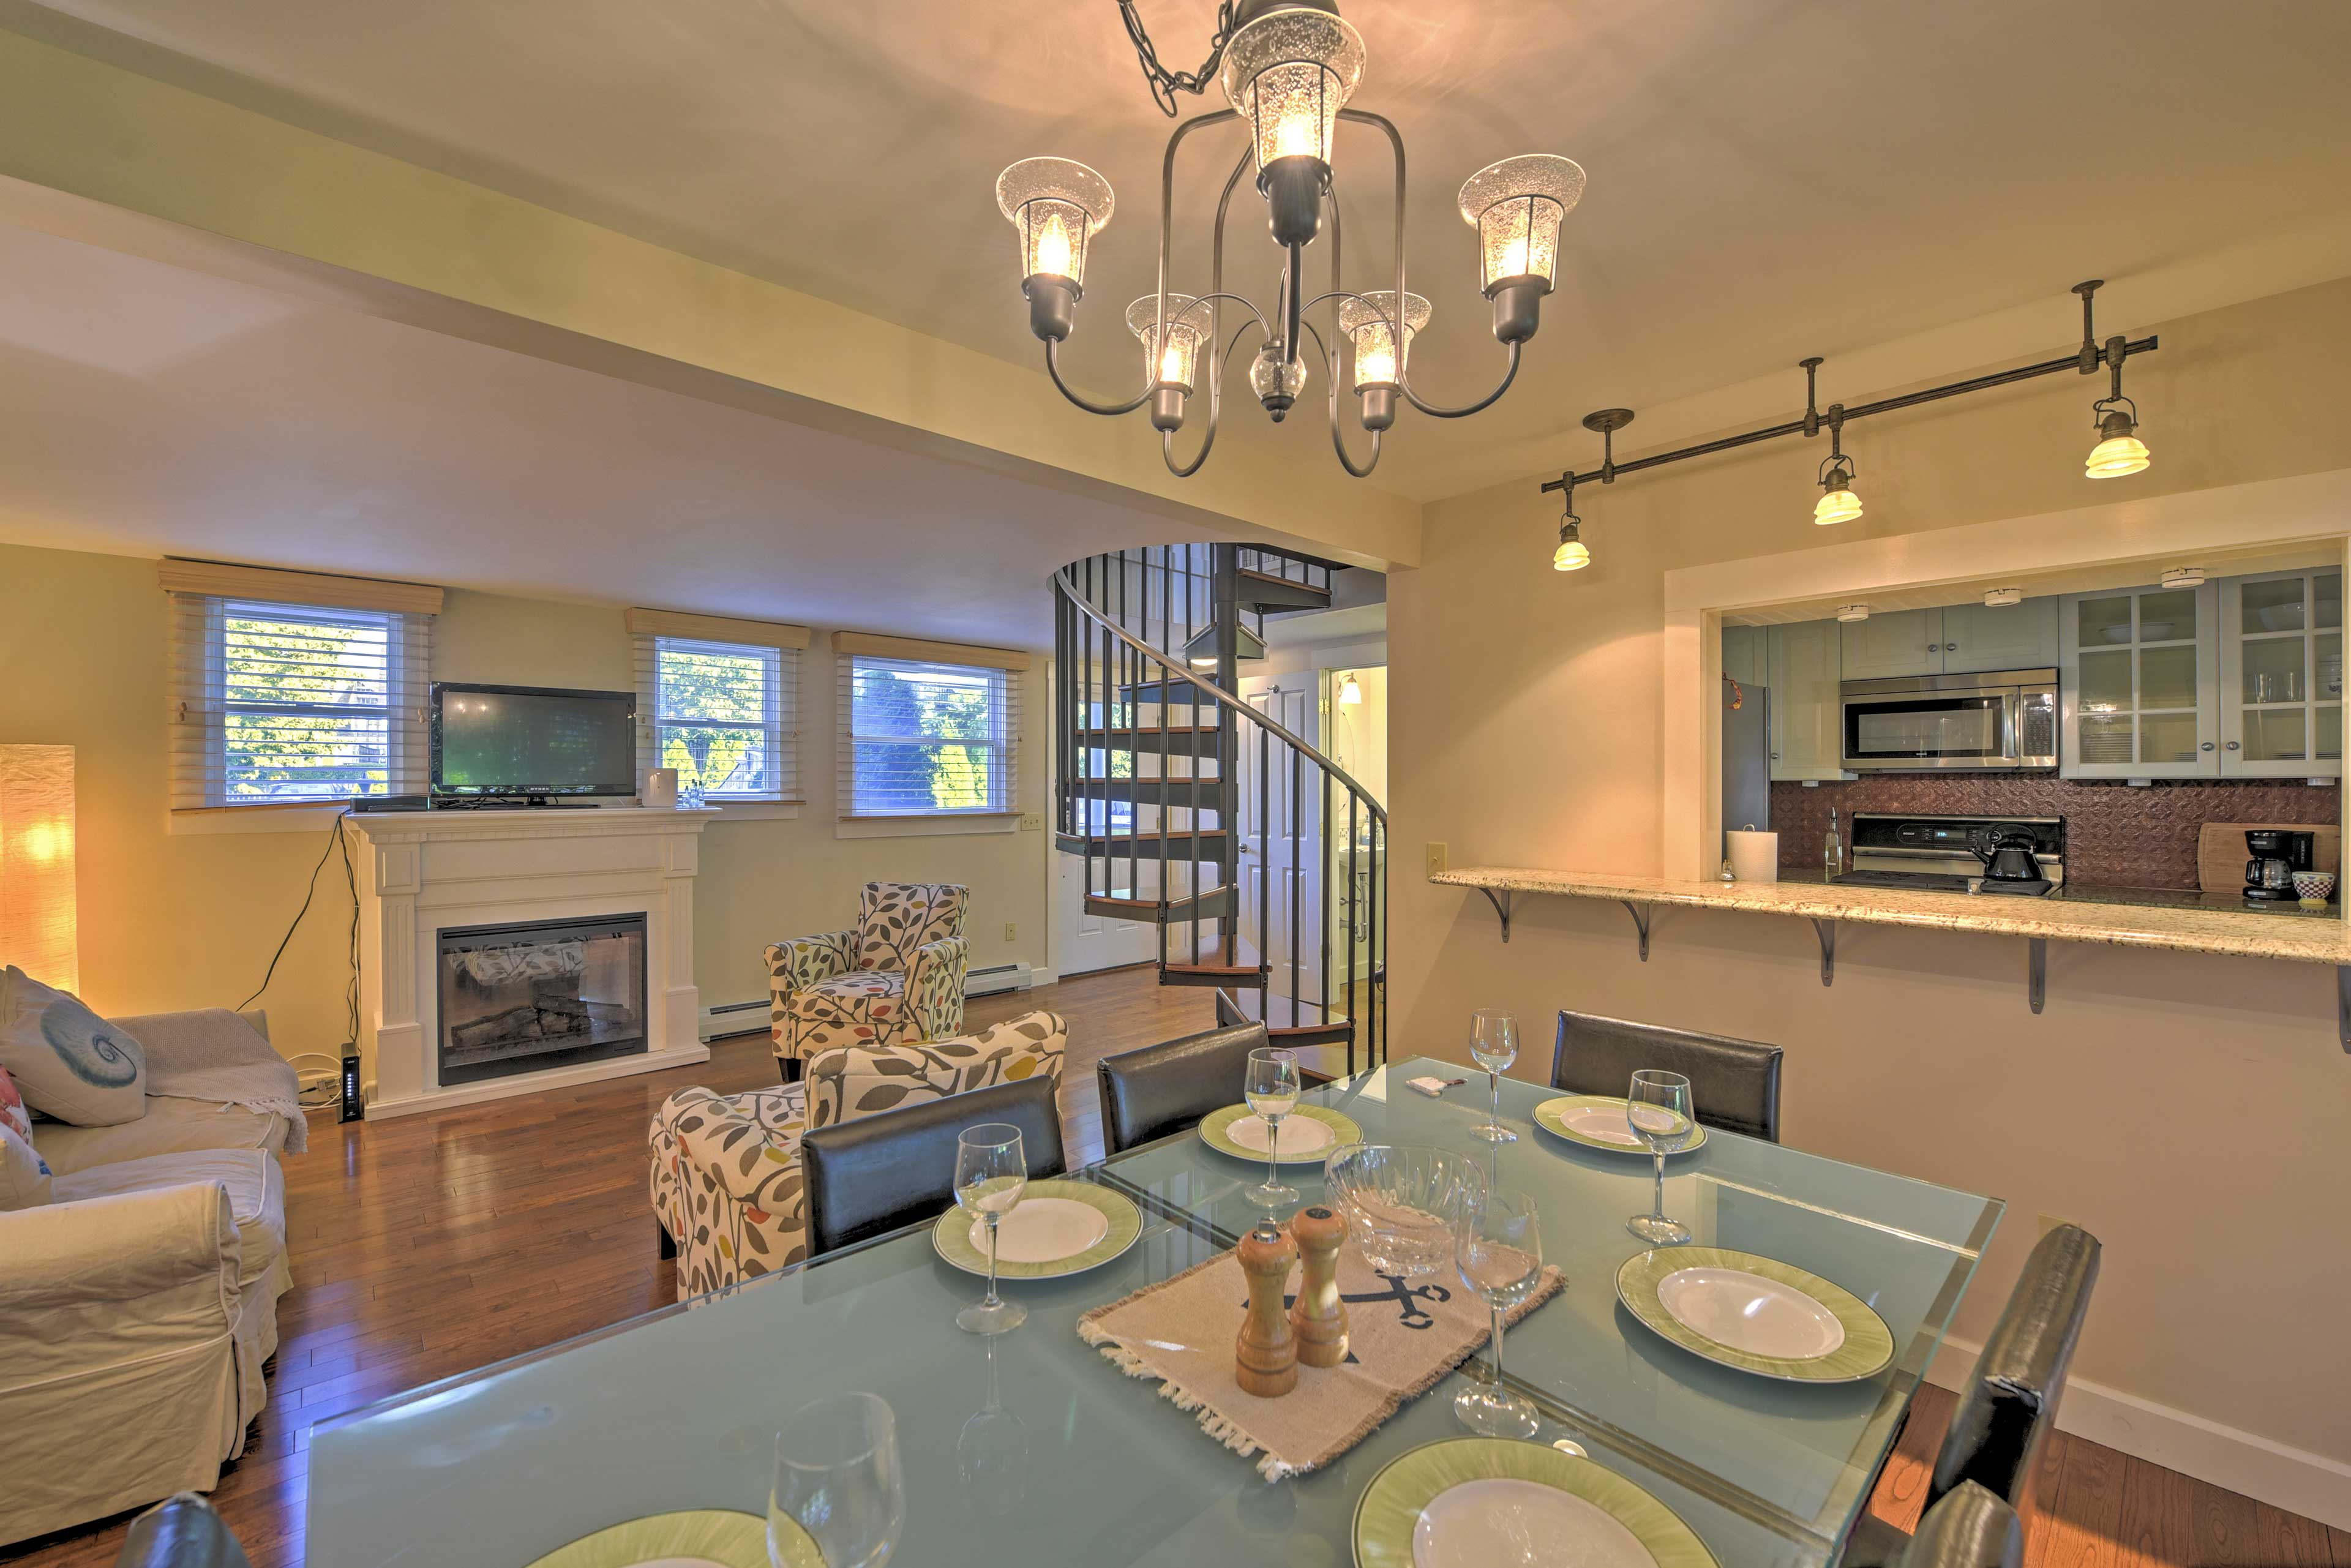 Step inside this beautifully renovated, 2-story condo and make yourself at home.